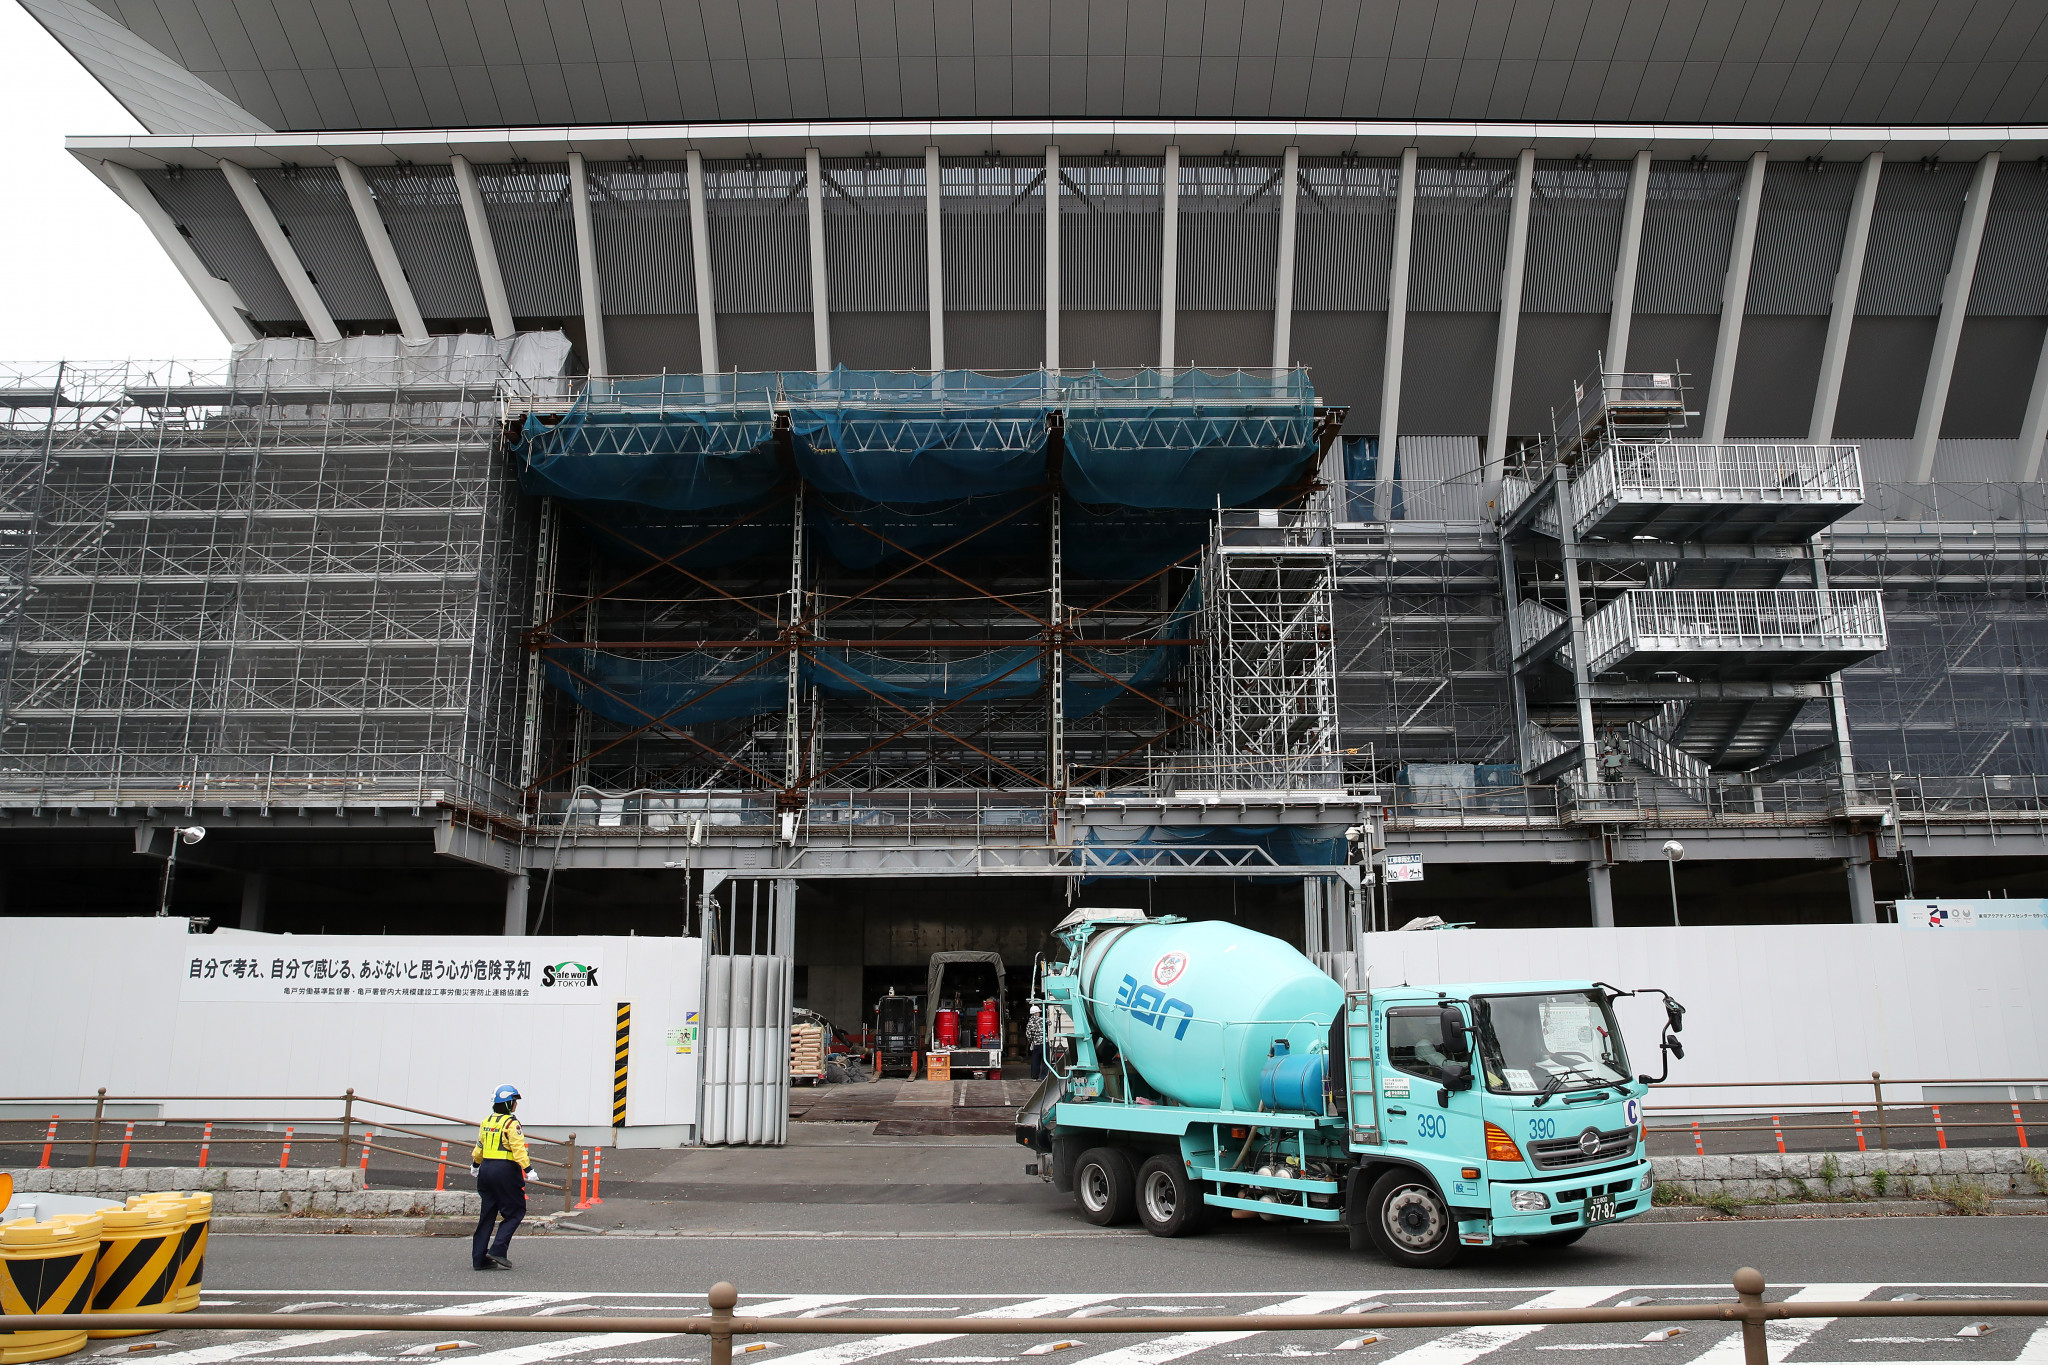 Construction continues at Tokyo 2020 venues with just nine months to go until the Olympic Games begin ©Getty Images